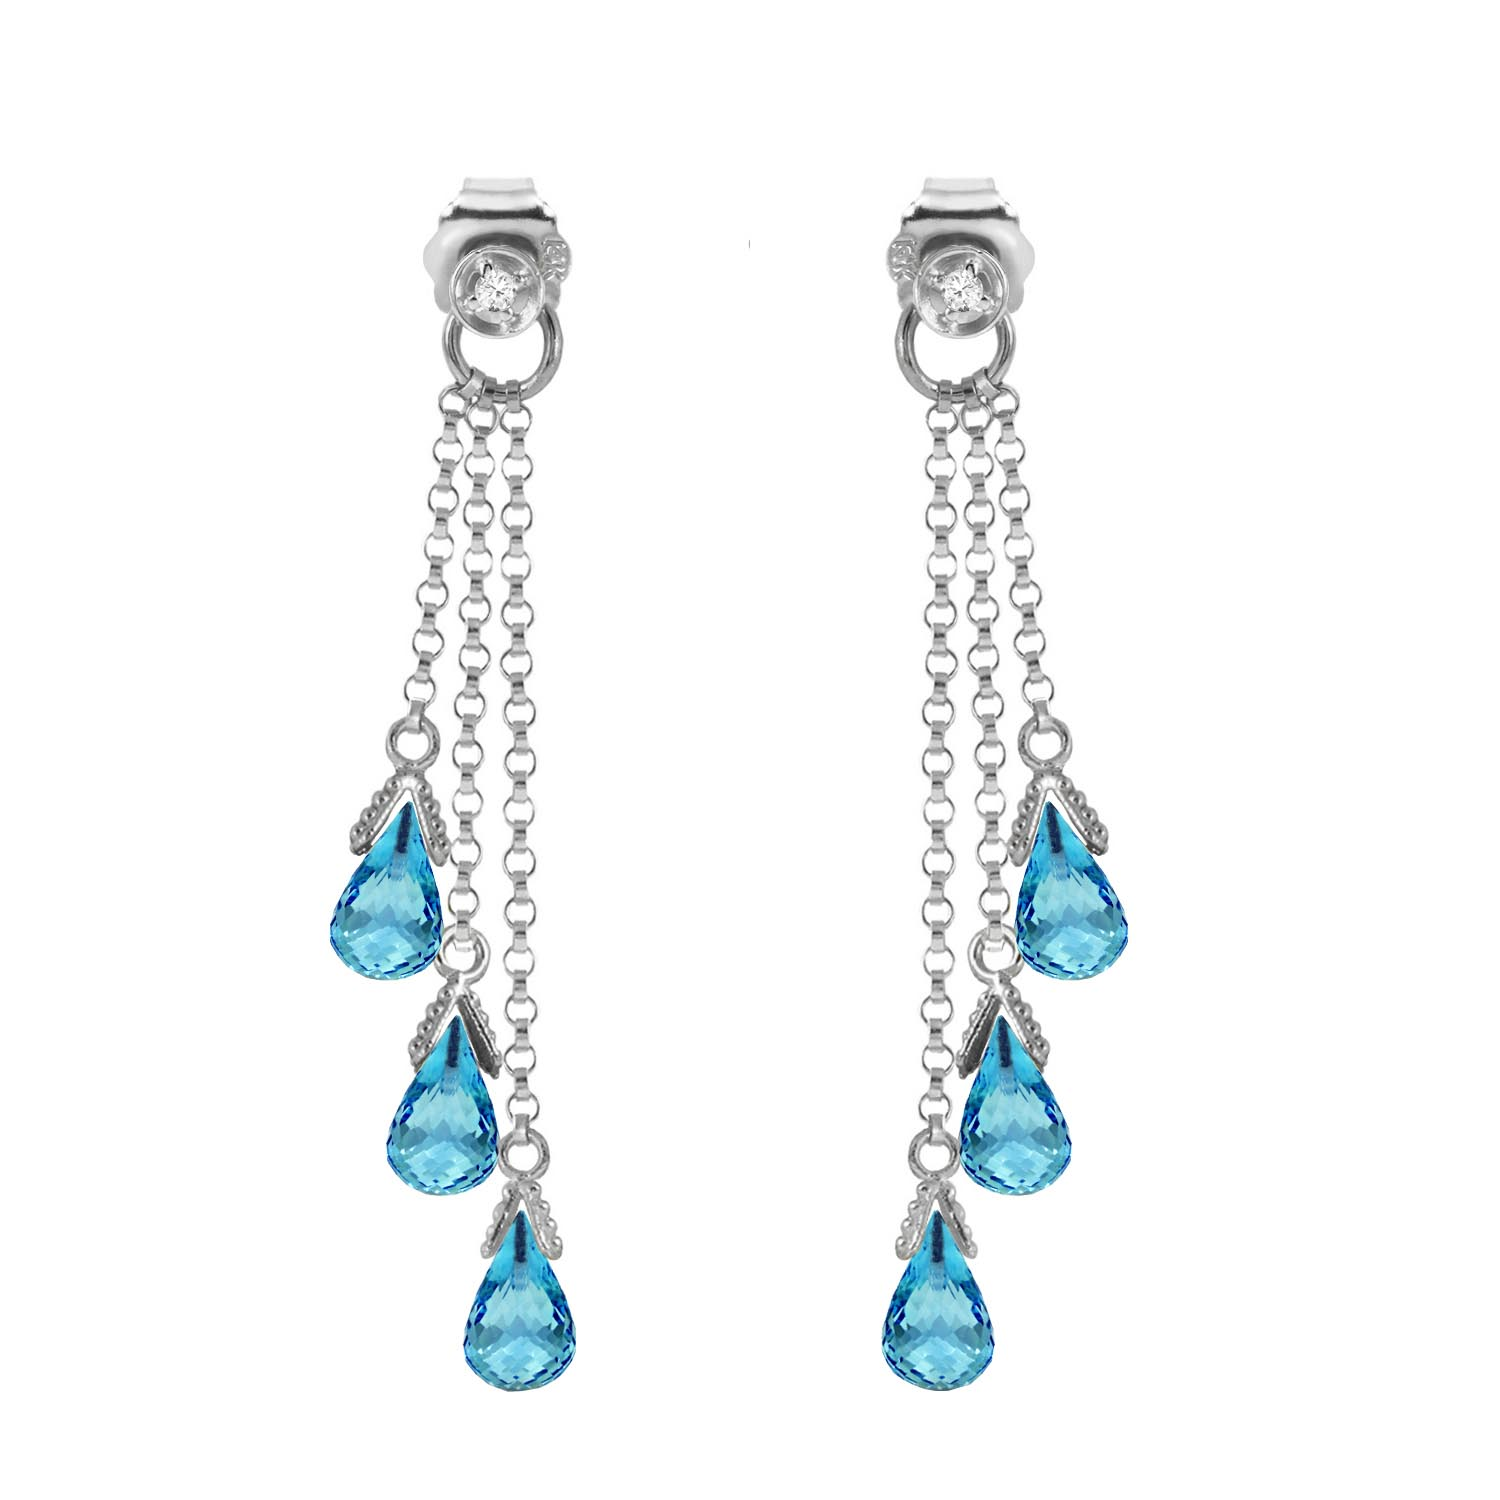 Blue Topaz and Diamond Trilogy Droplet Earrings 10.5ctw in 14K White Gold